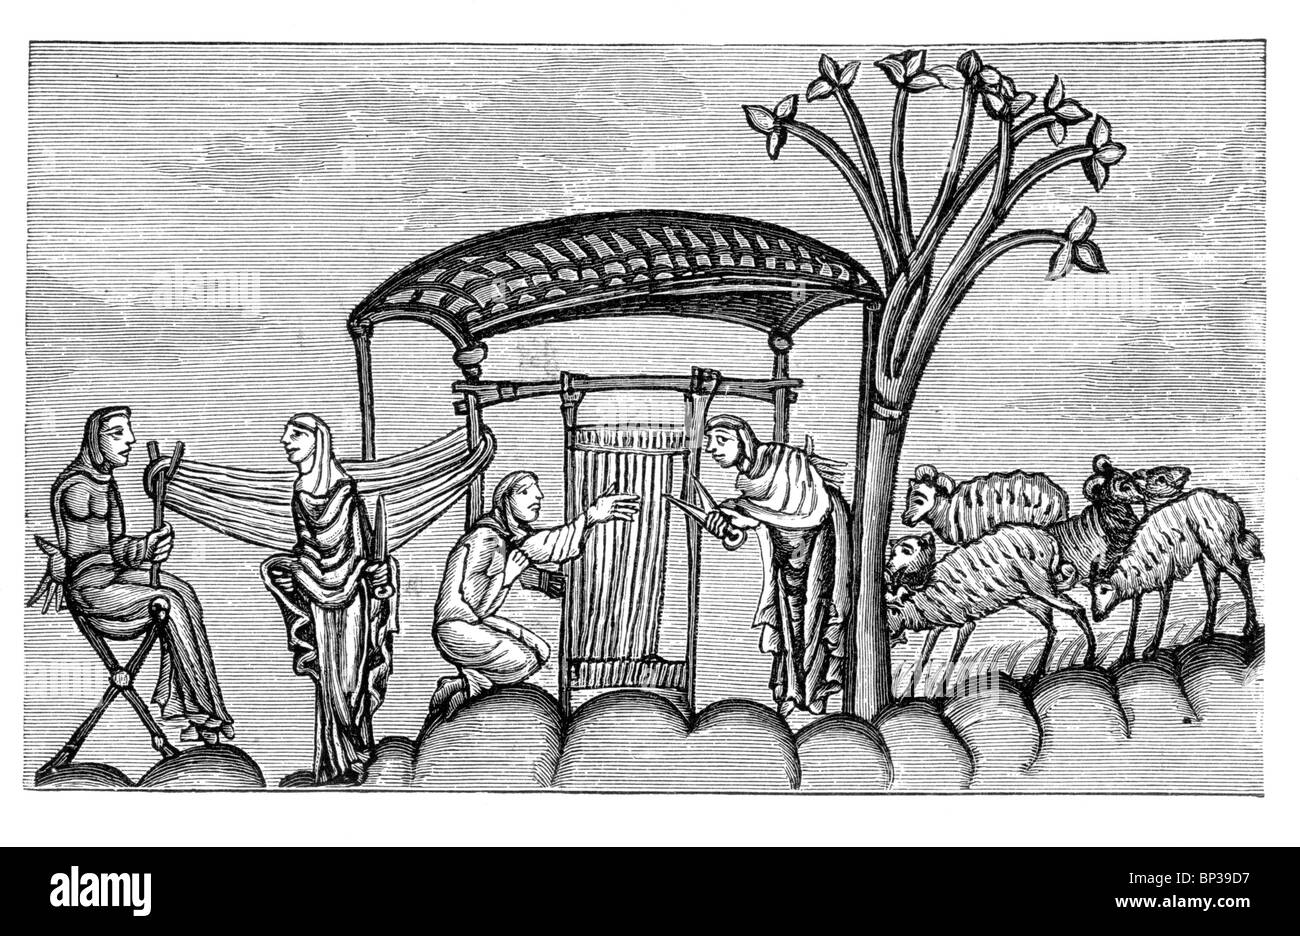 Black and White Illustration; Women weaving 12th century; - Stock Image